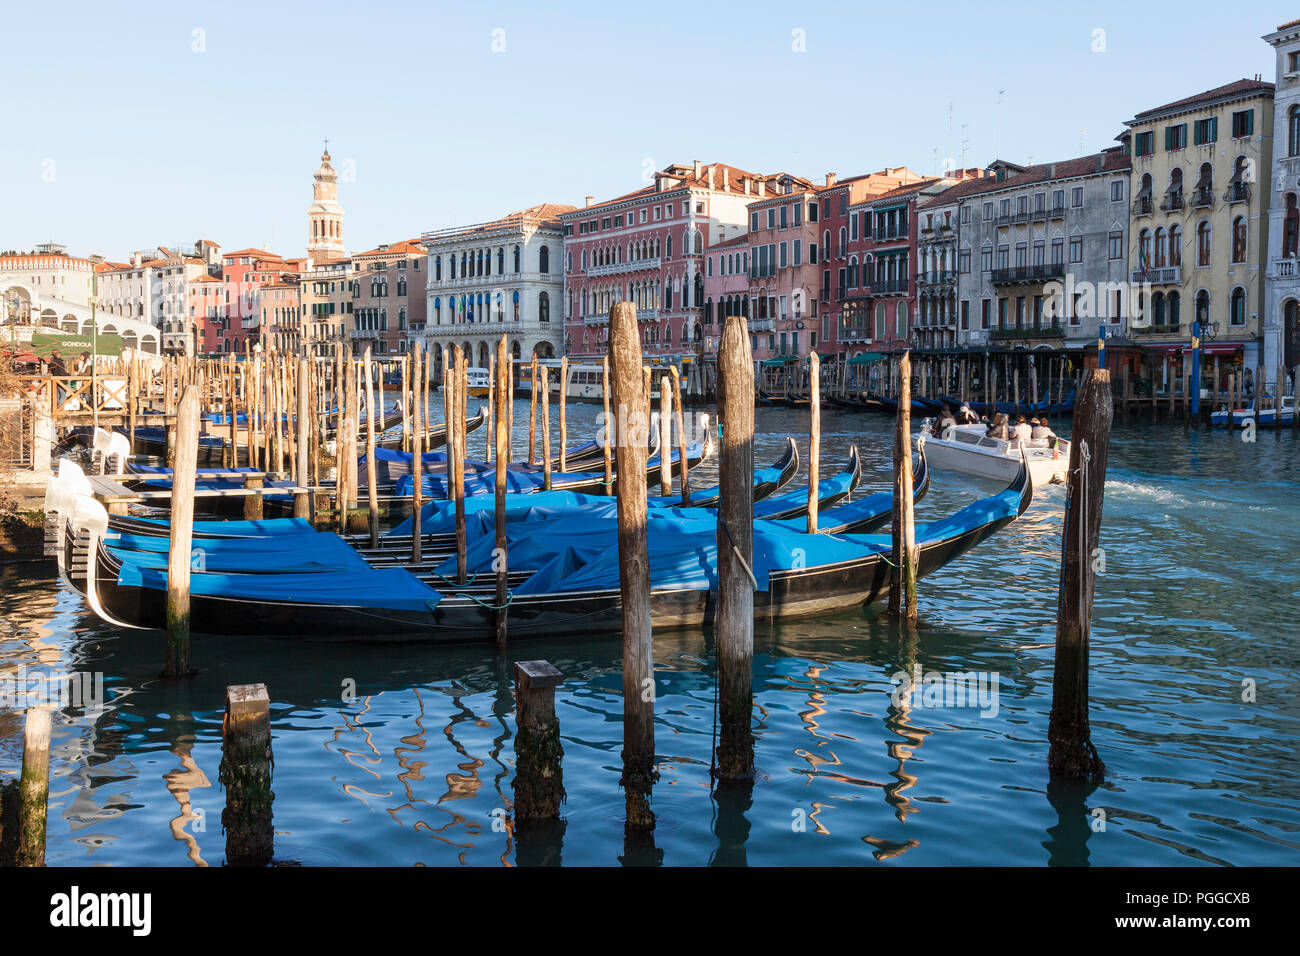 Moored gondolas on the Grand Canal at sunset, San Polo, Venice, Veneto, Italy on a beautiful winter evening - Stock Image